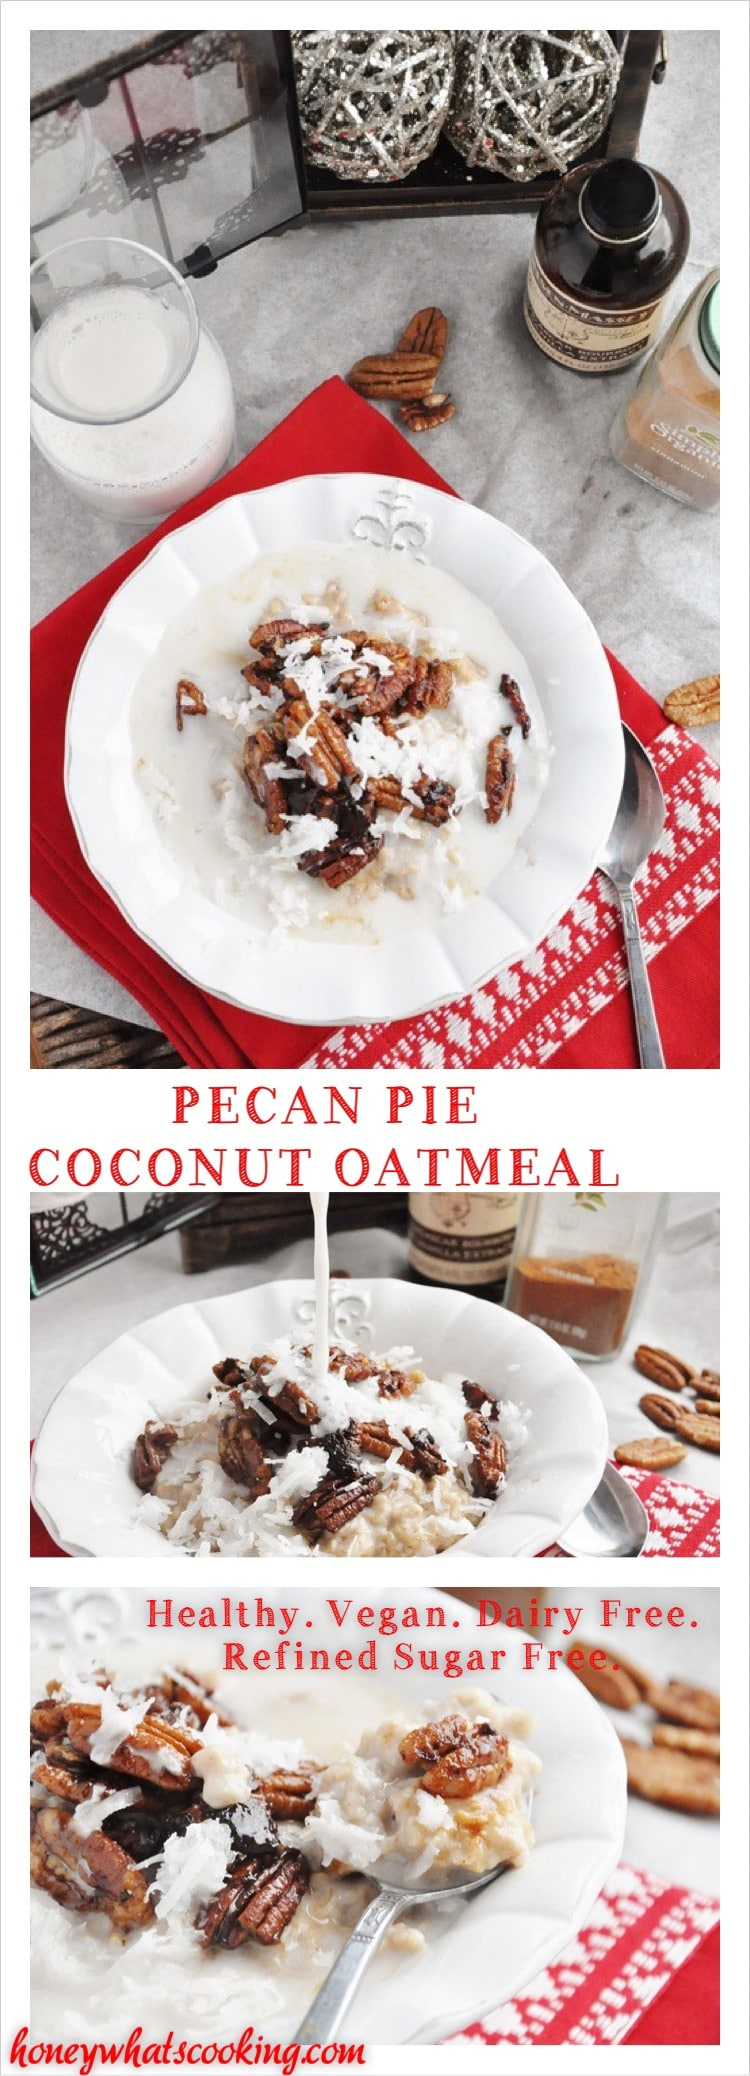 Pecan Pie Coconut Oatmeal - healthy, vegan, dairy free, refined sugar free.